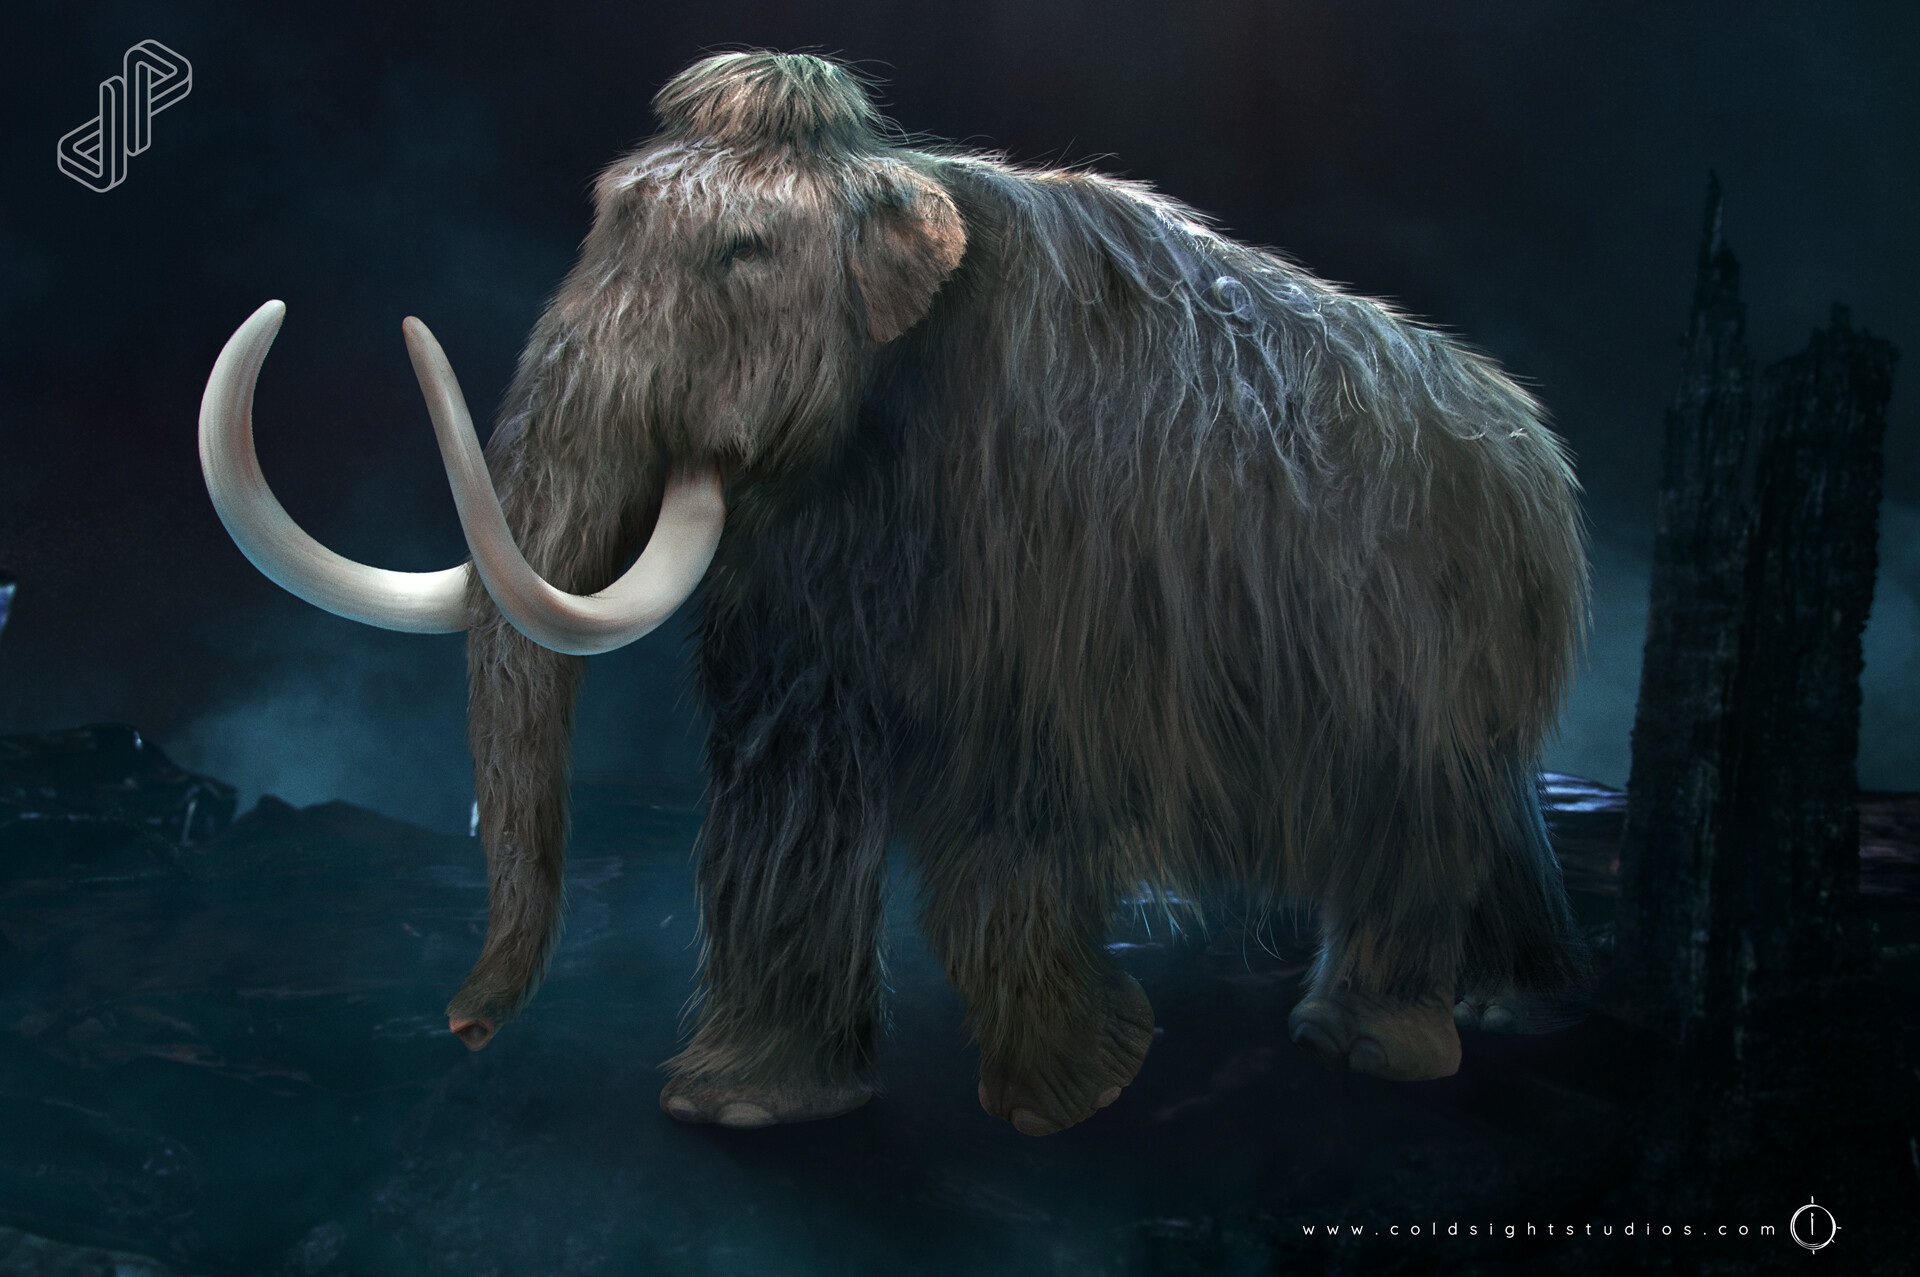 Mammoth, the background is from Steven Azancot